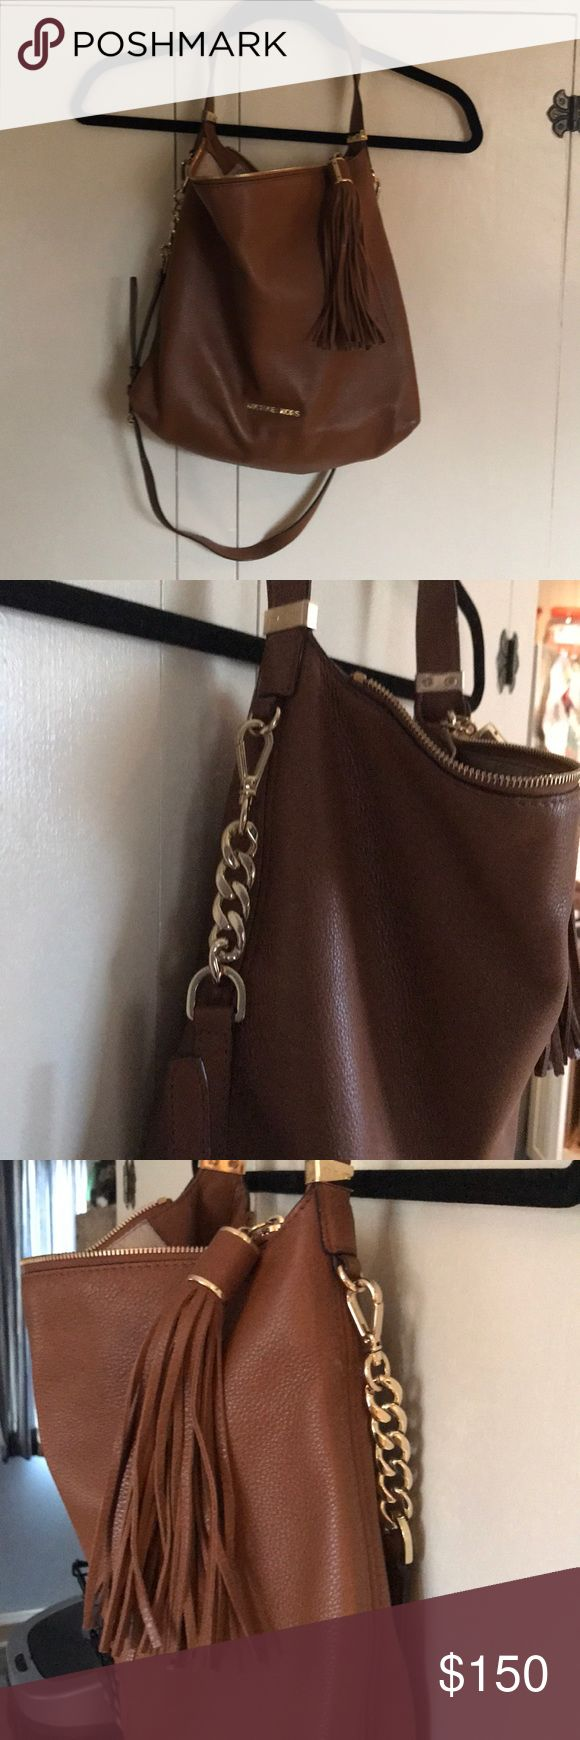 Light Brown Michael Kors Hobo Amazing Soft Brown Michael Kors bag with large zip tassel. Beautiful. Michael Kors Bags Hobos